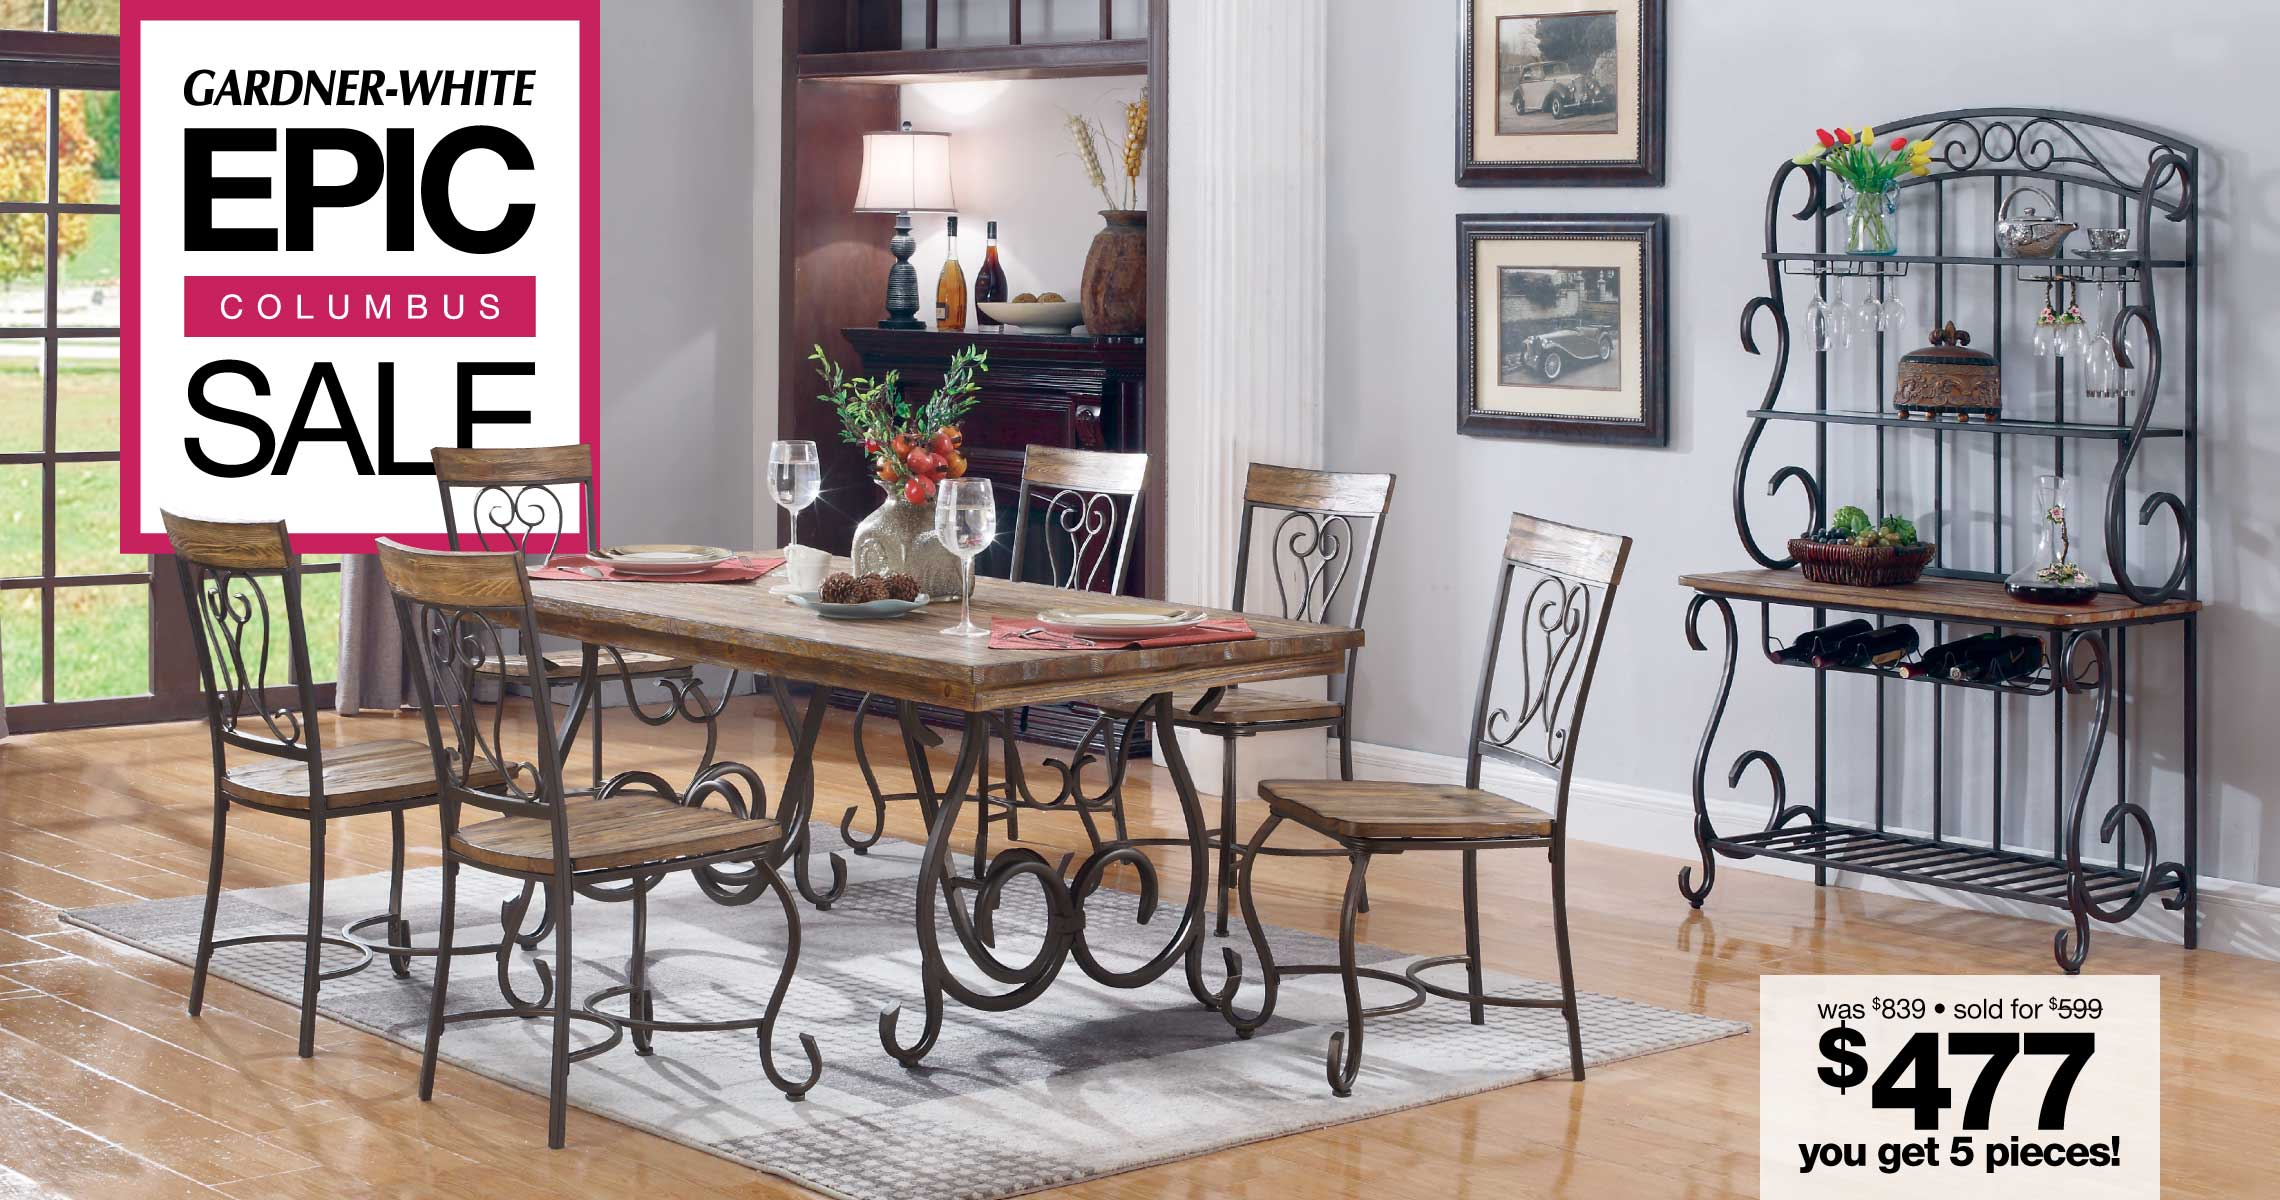 100 Kitchen Collection Outlet Coupon 28 Kitchen Collection Vacaville Vacaville Outlets